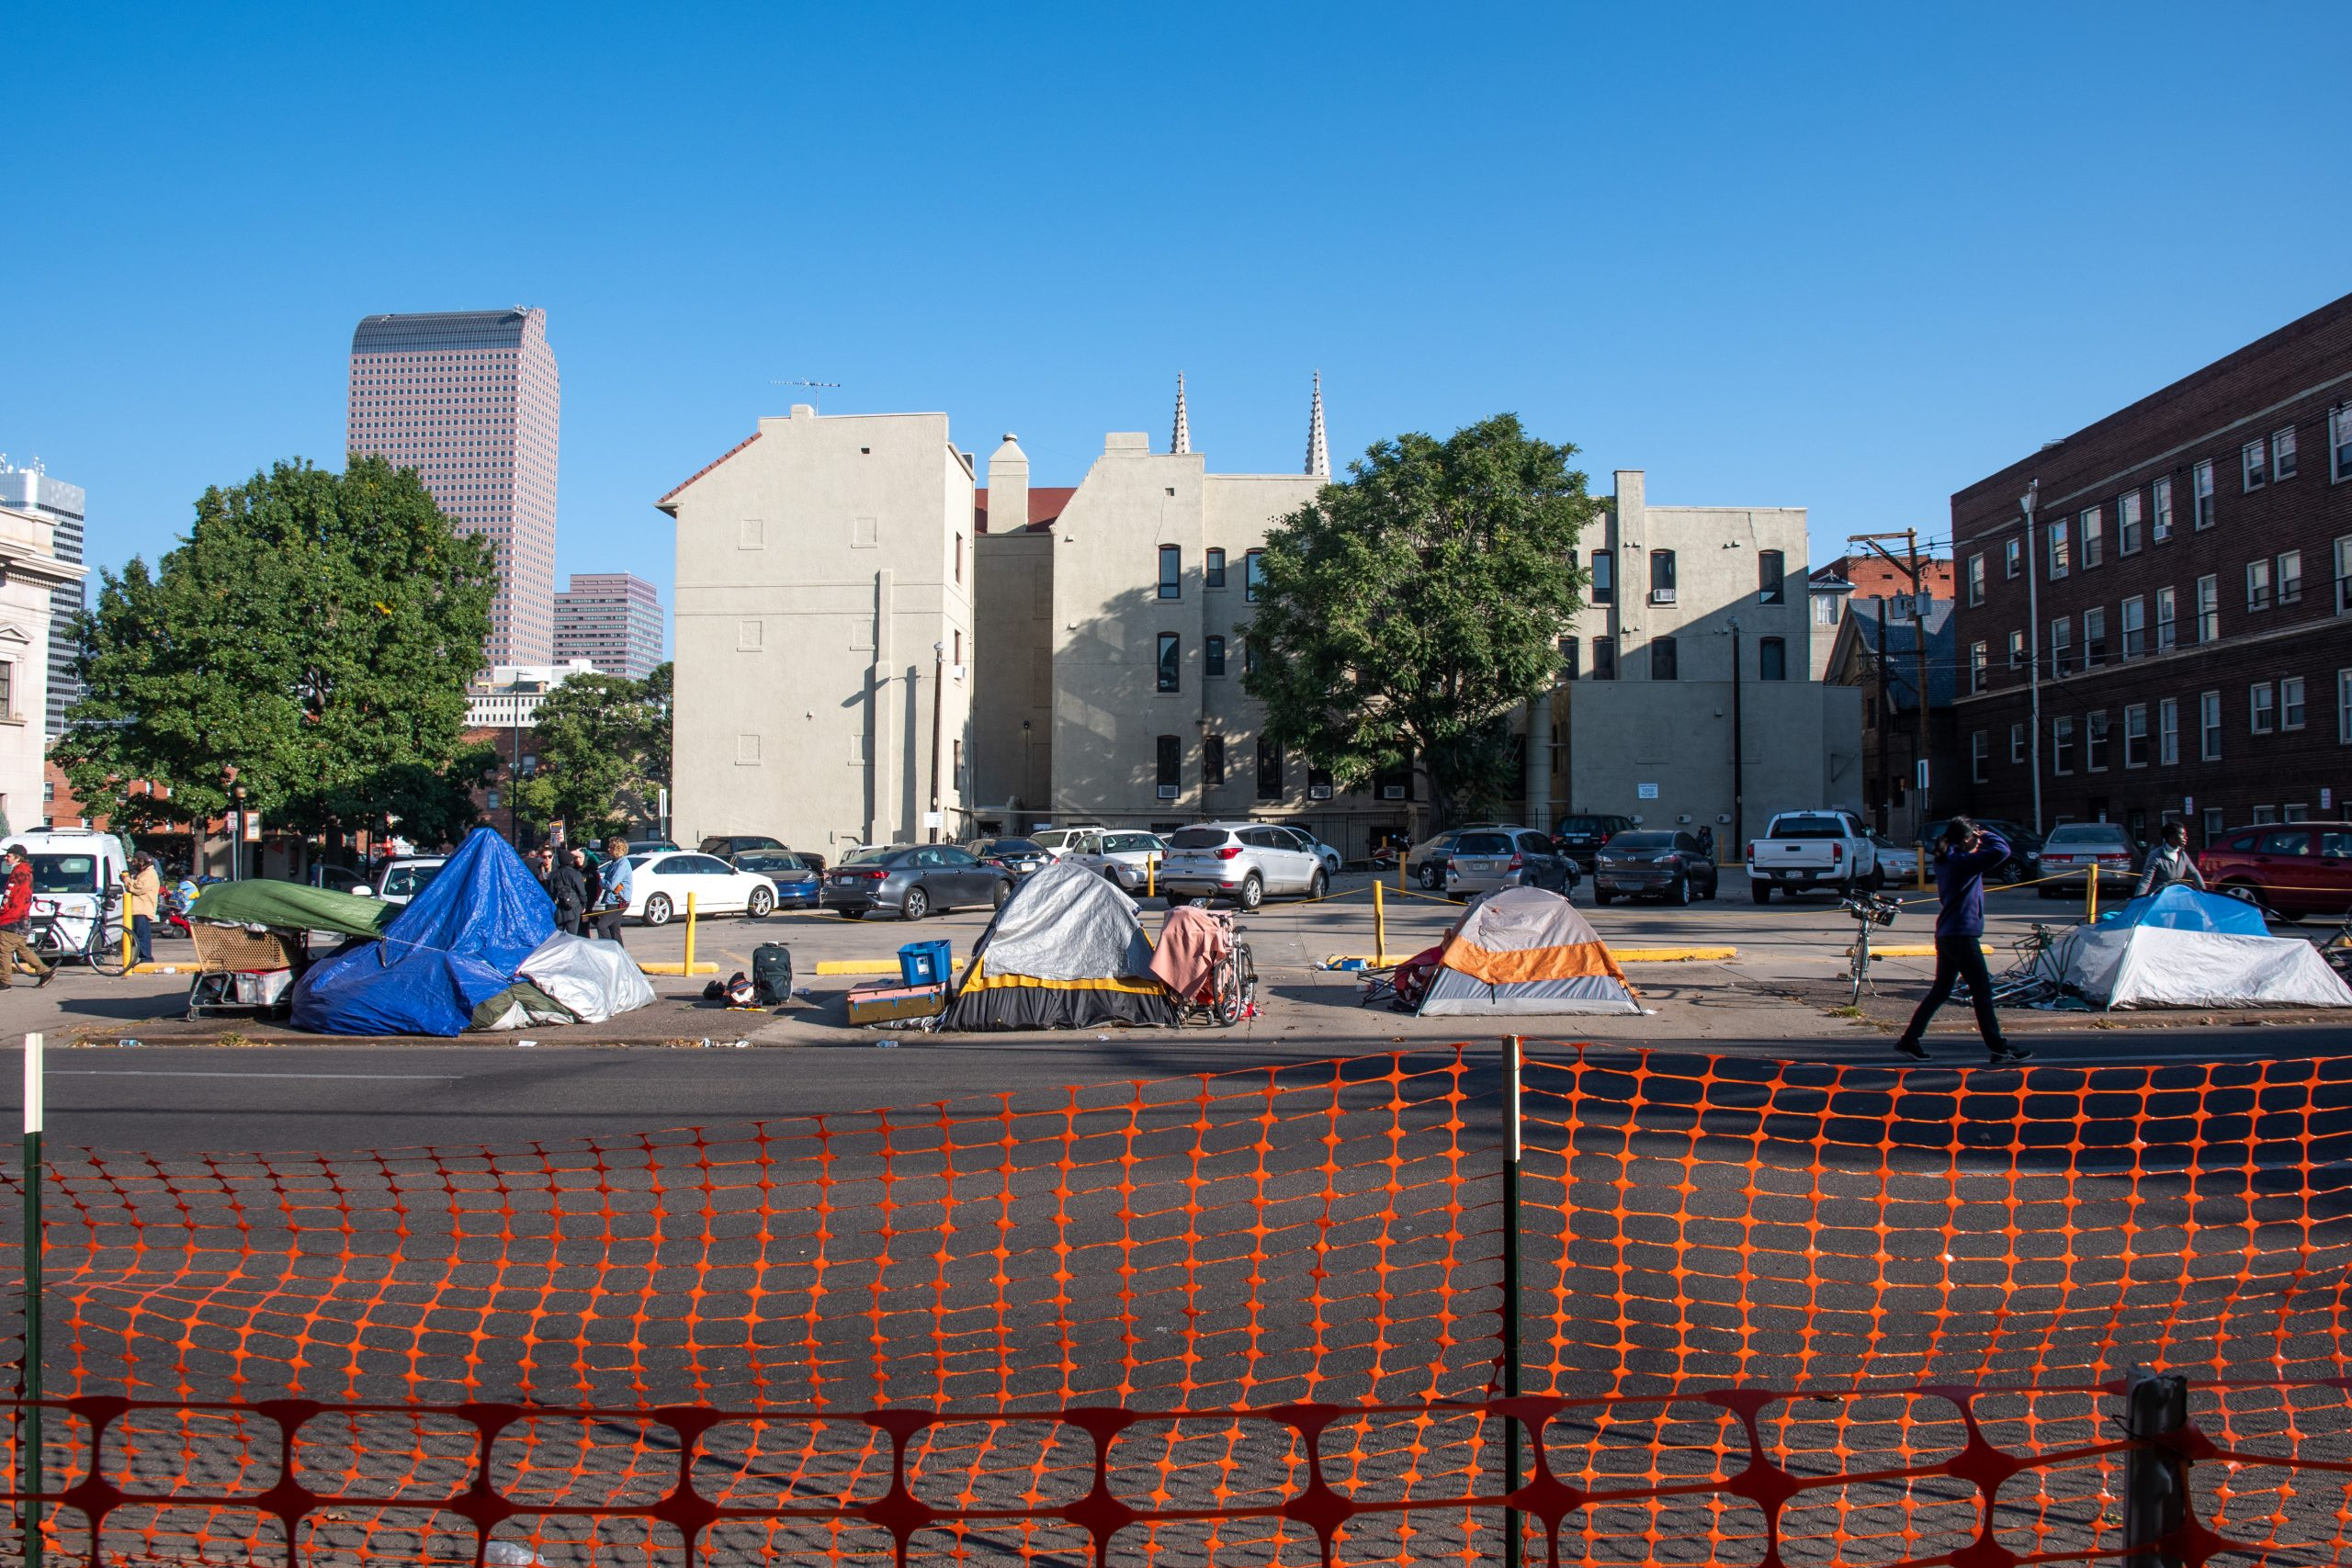 Colorado counties are skipping parts of annual homeless count due to coronavirus